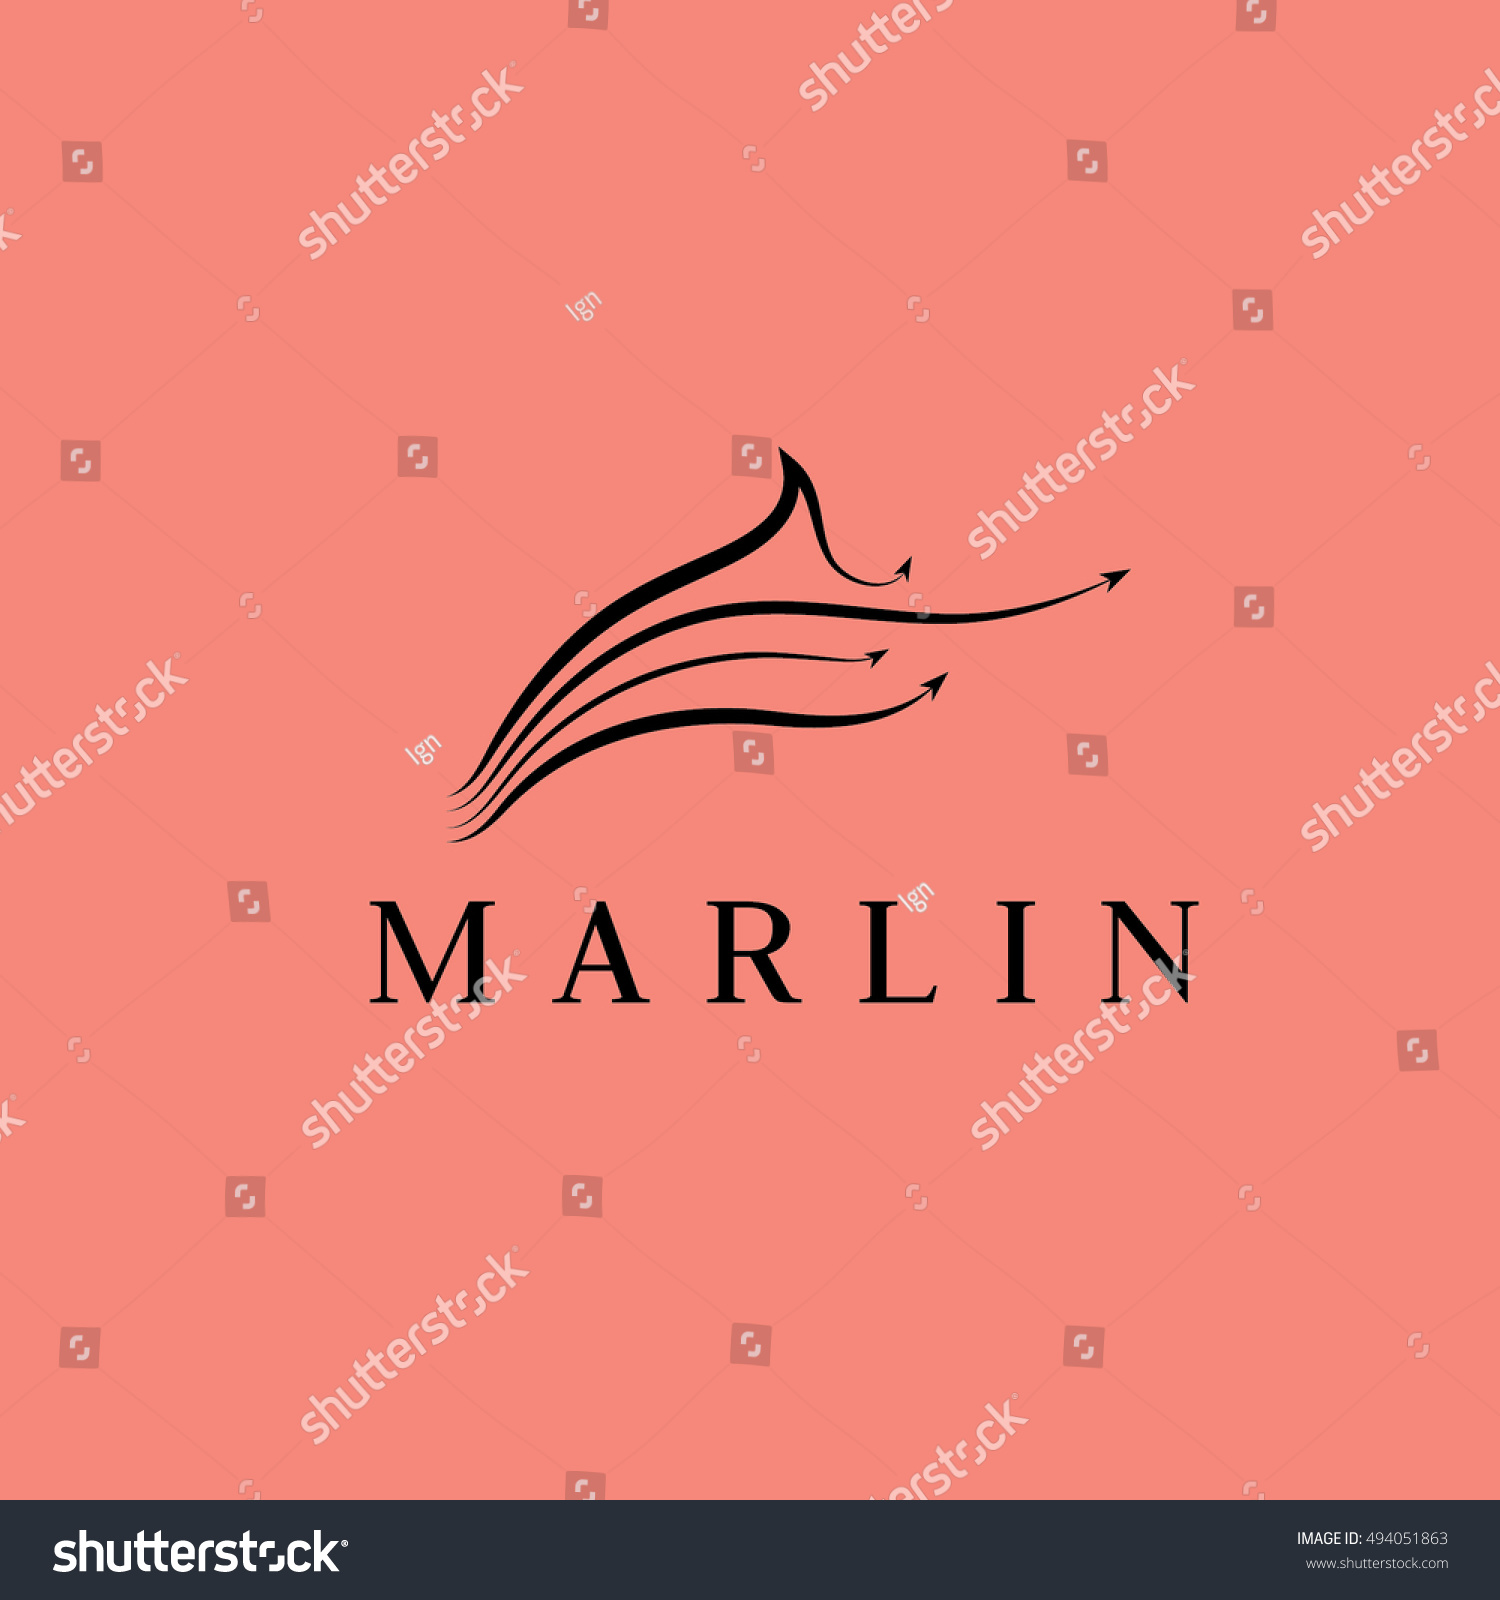 Marlin logo  Stock Vector  IlyaF 75363325